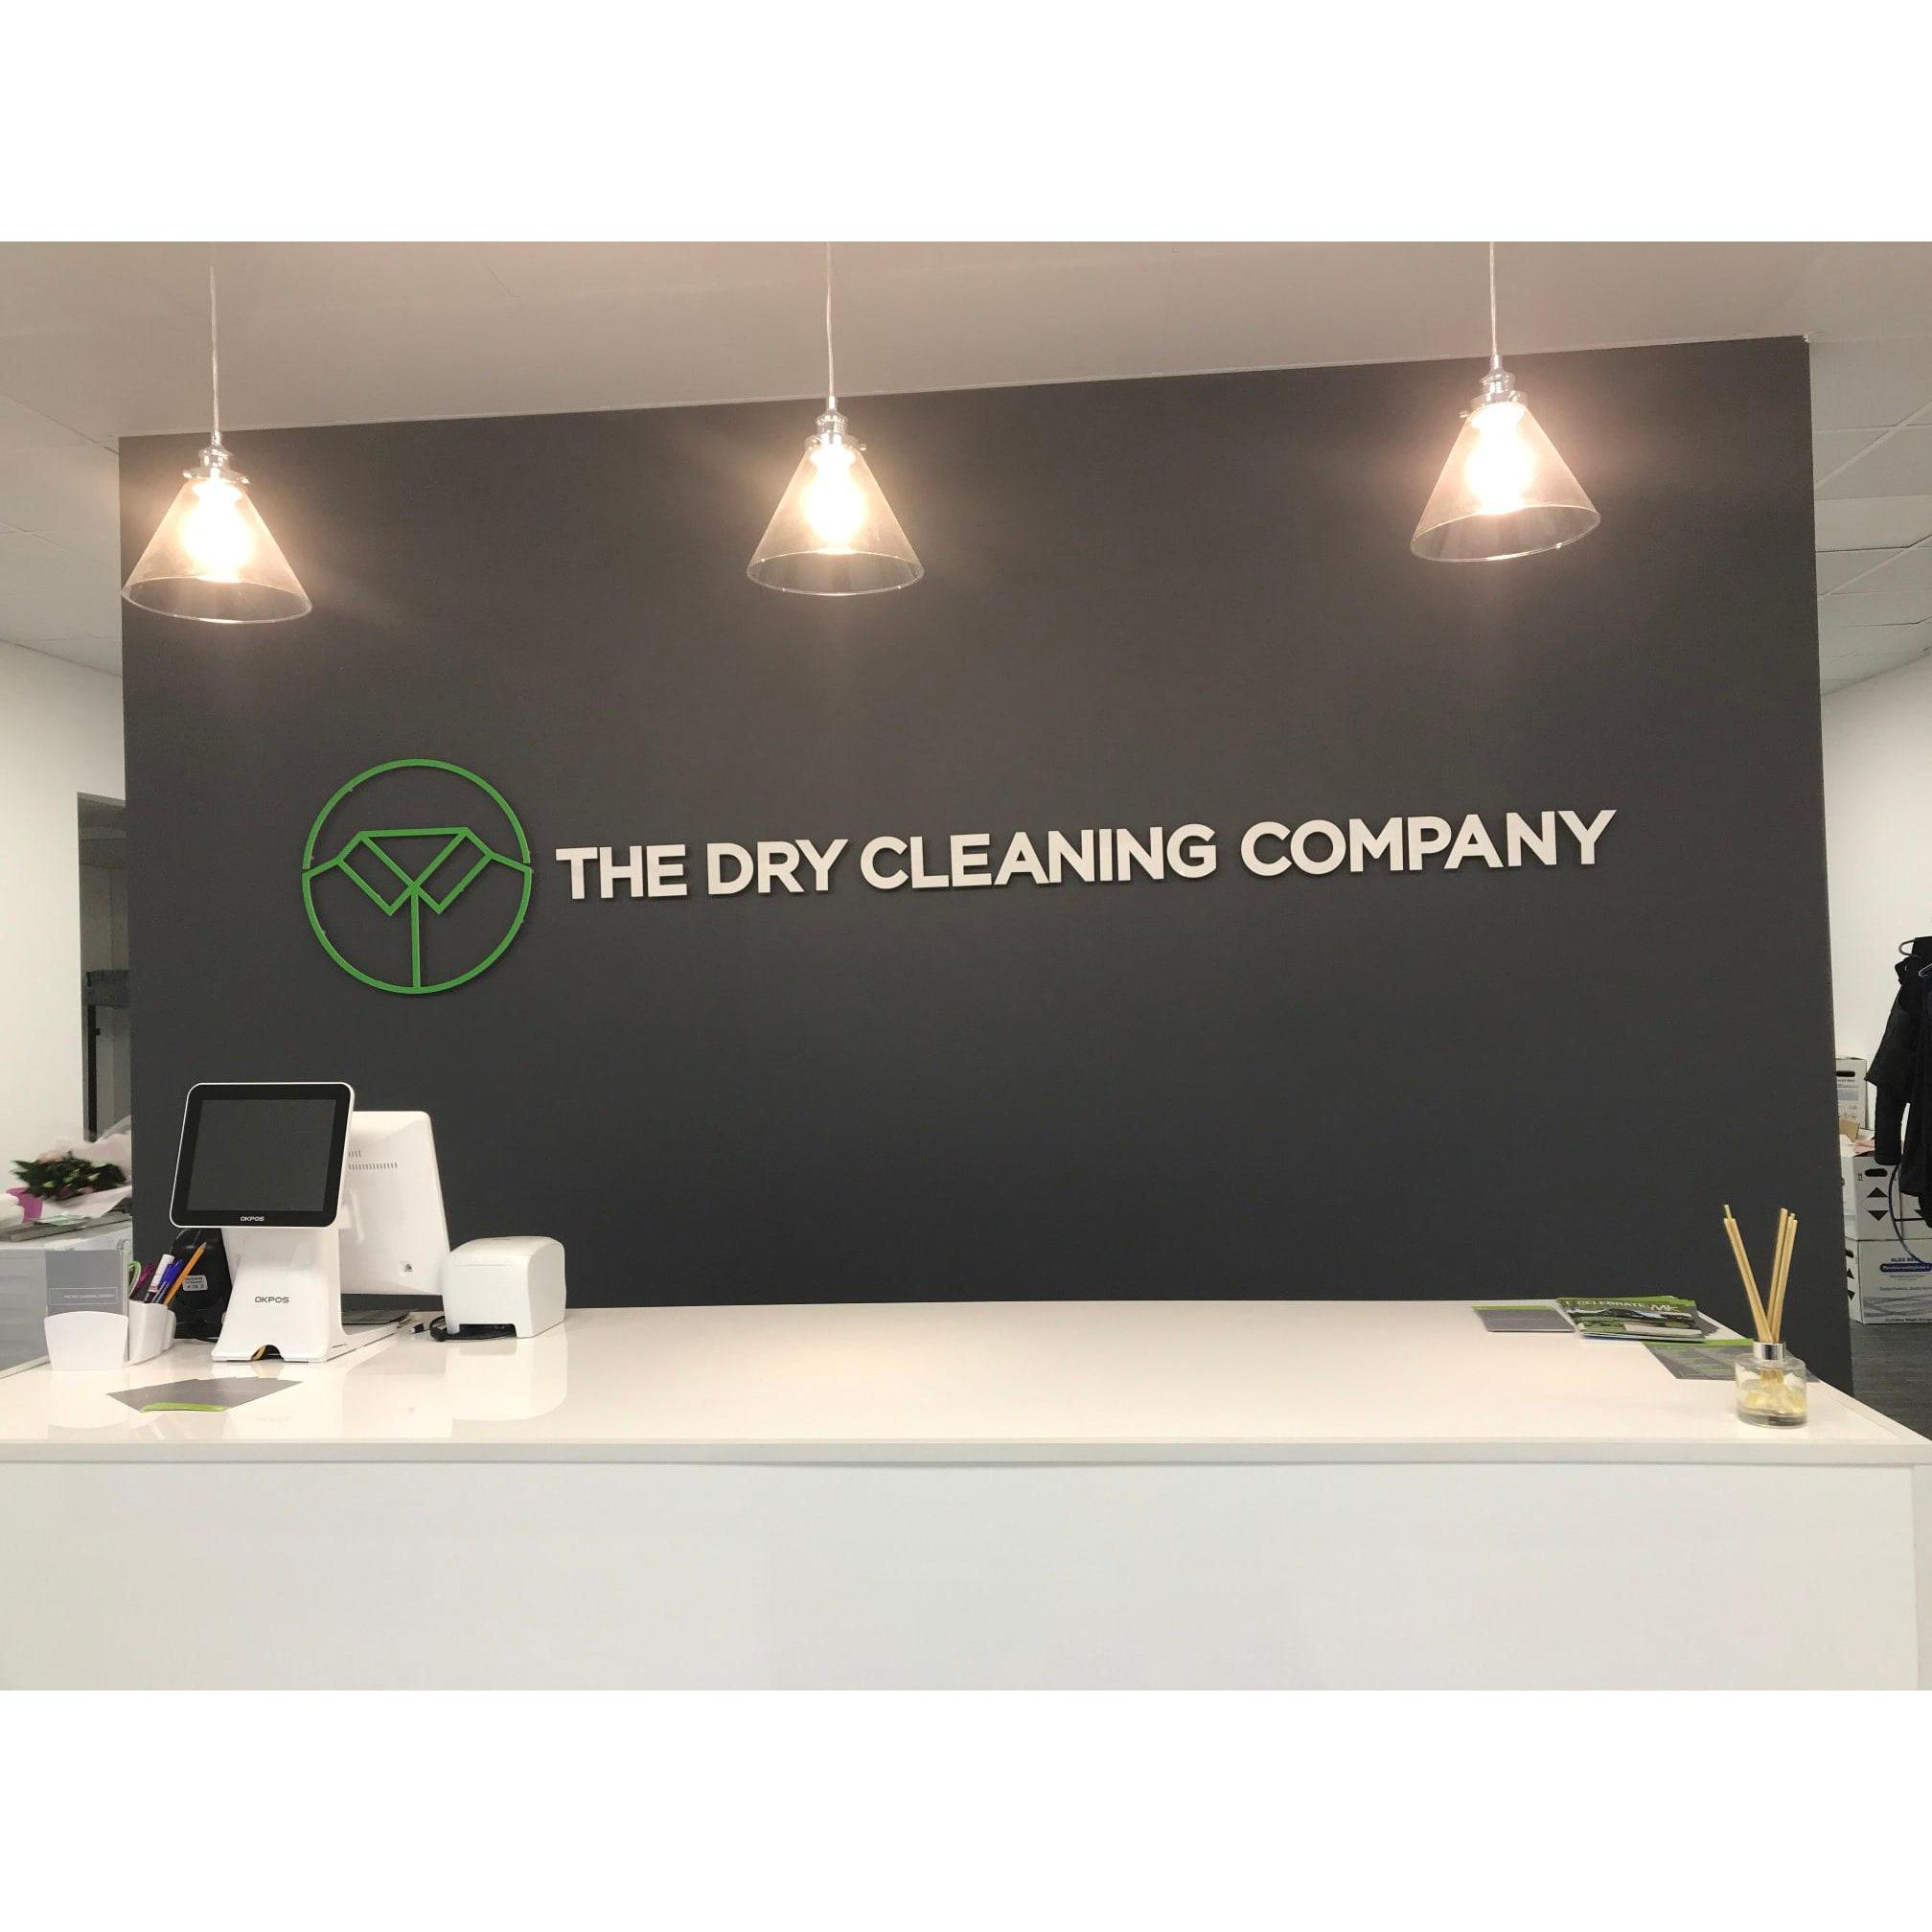 Remarkable The Dry Cleaning Company Dry Cleaning And Laundry Services Interior Design Ideas Tzicisoteloinfo